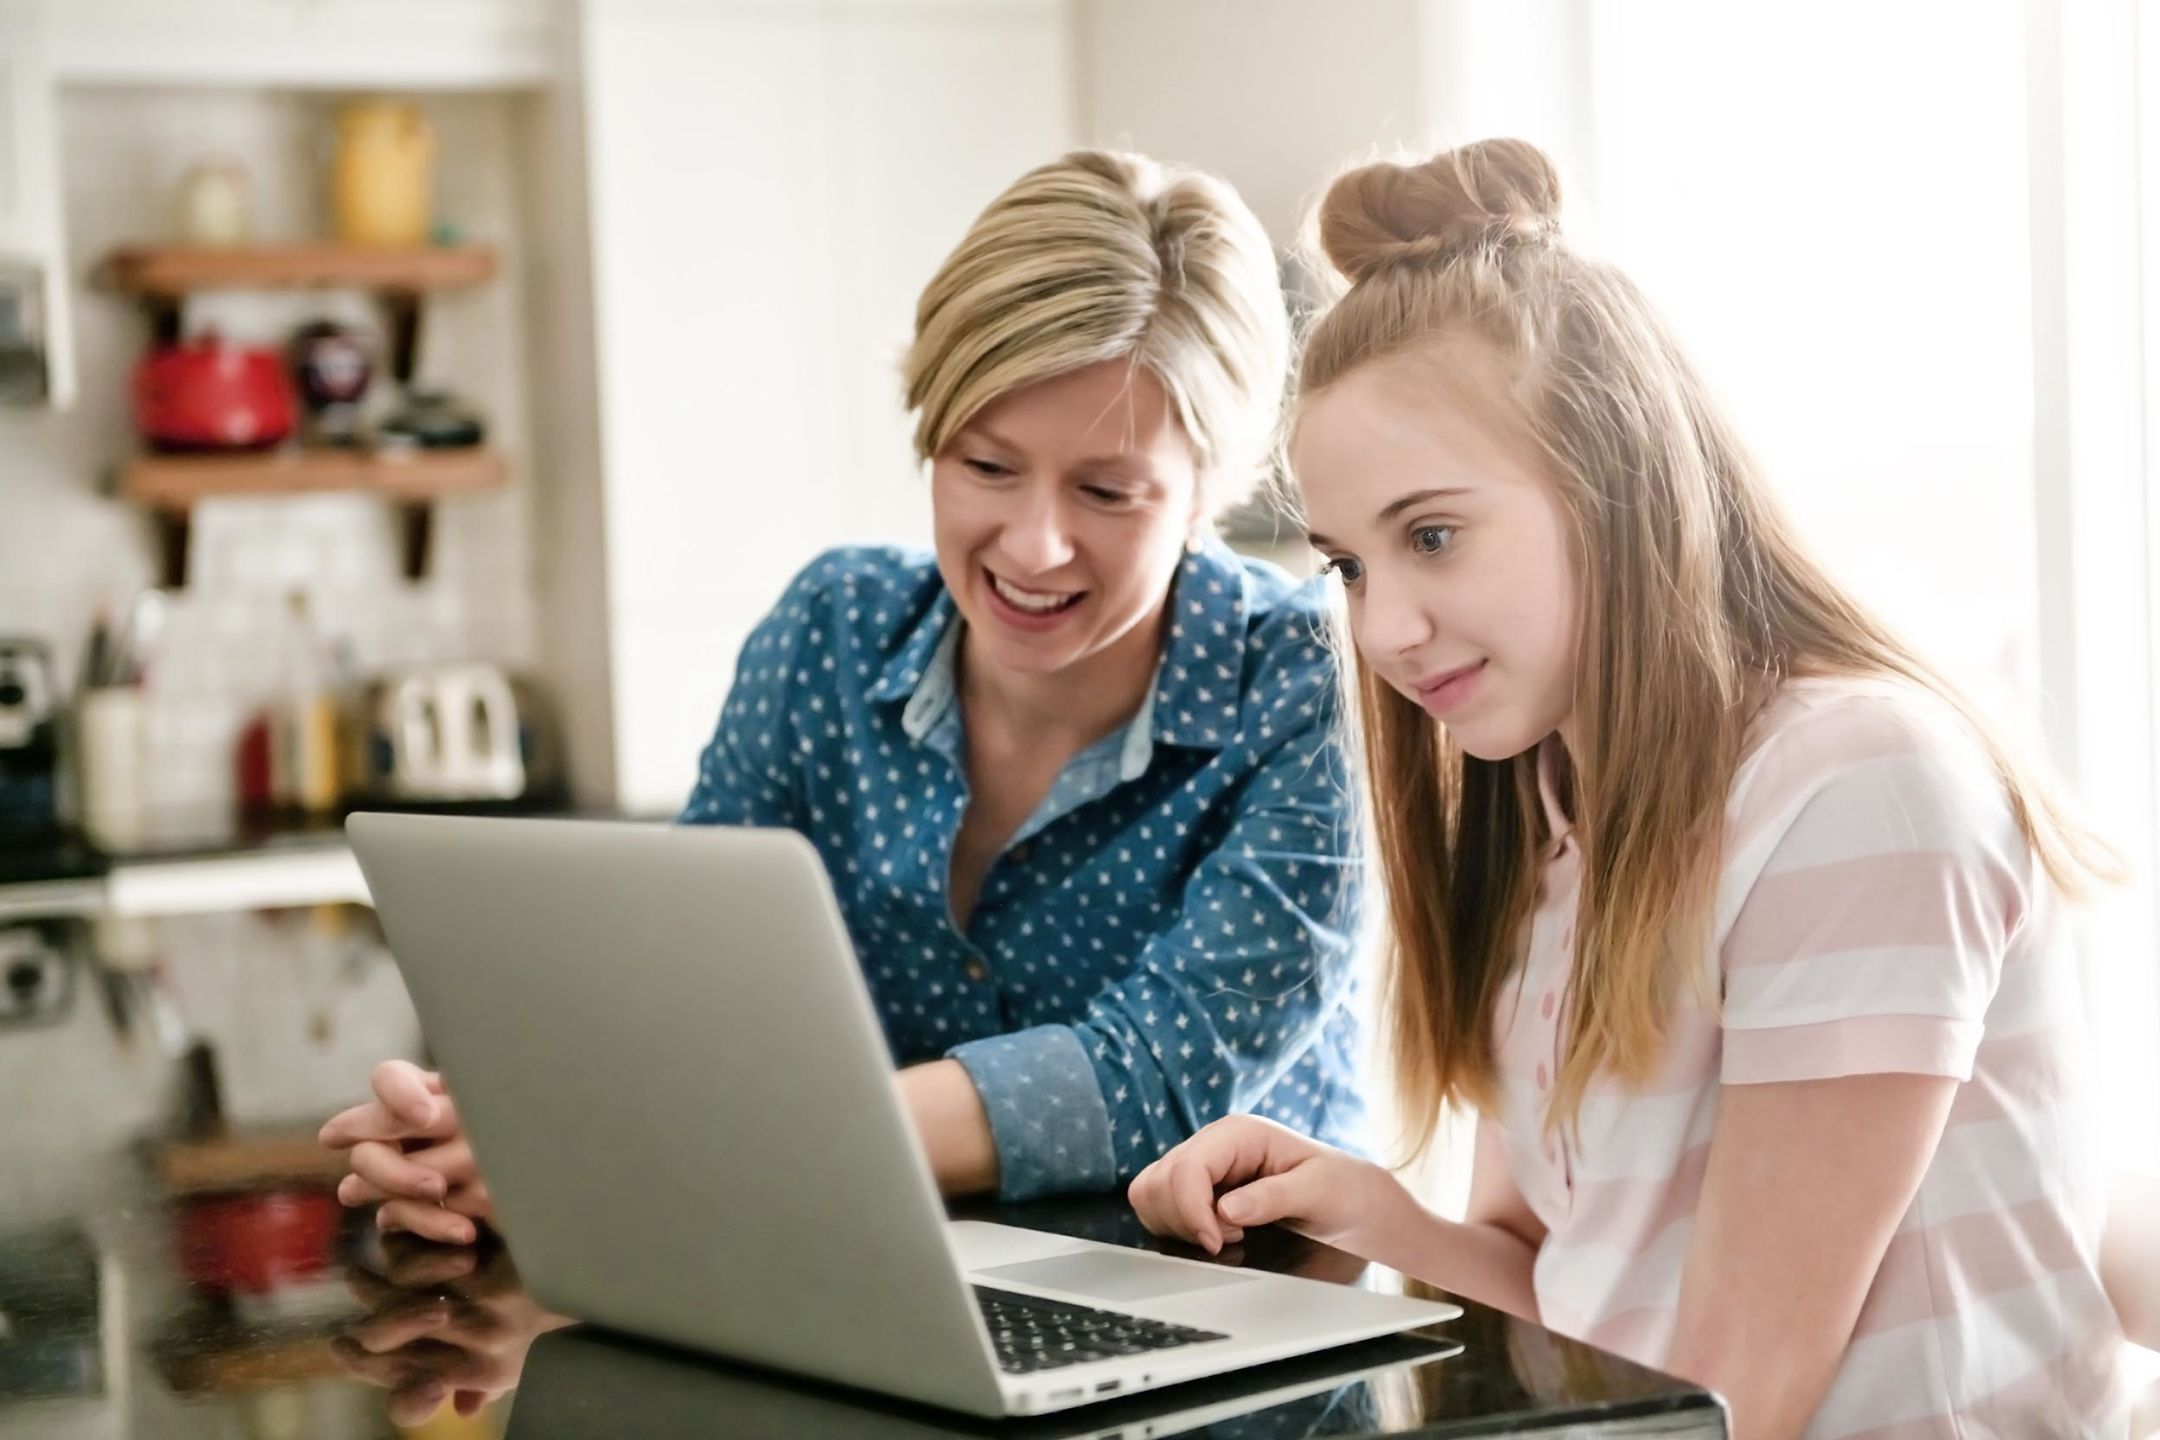 A parent and daughter working together on a laptop.